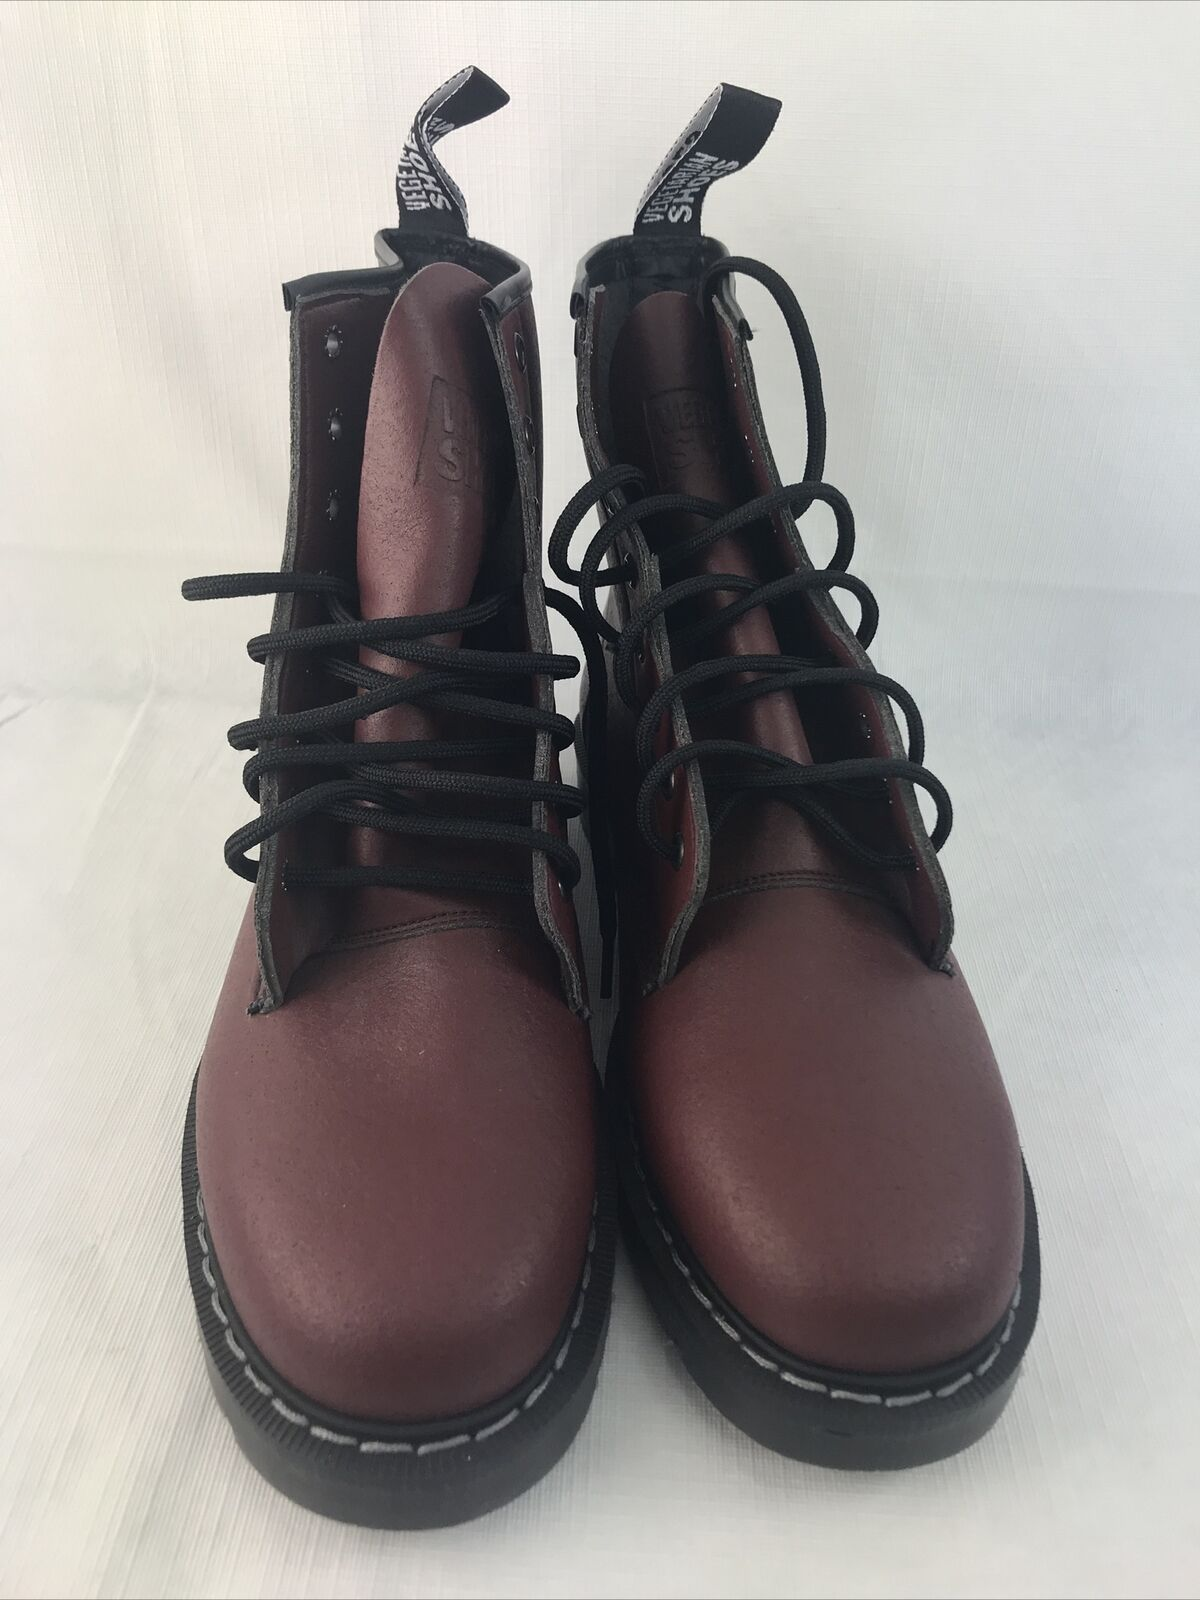 Hawkins Astronaut Boots Solovair Vegetarian Shoes 9/10 Eyelet Cherry Red Unisex